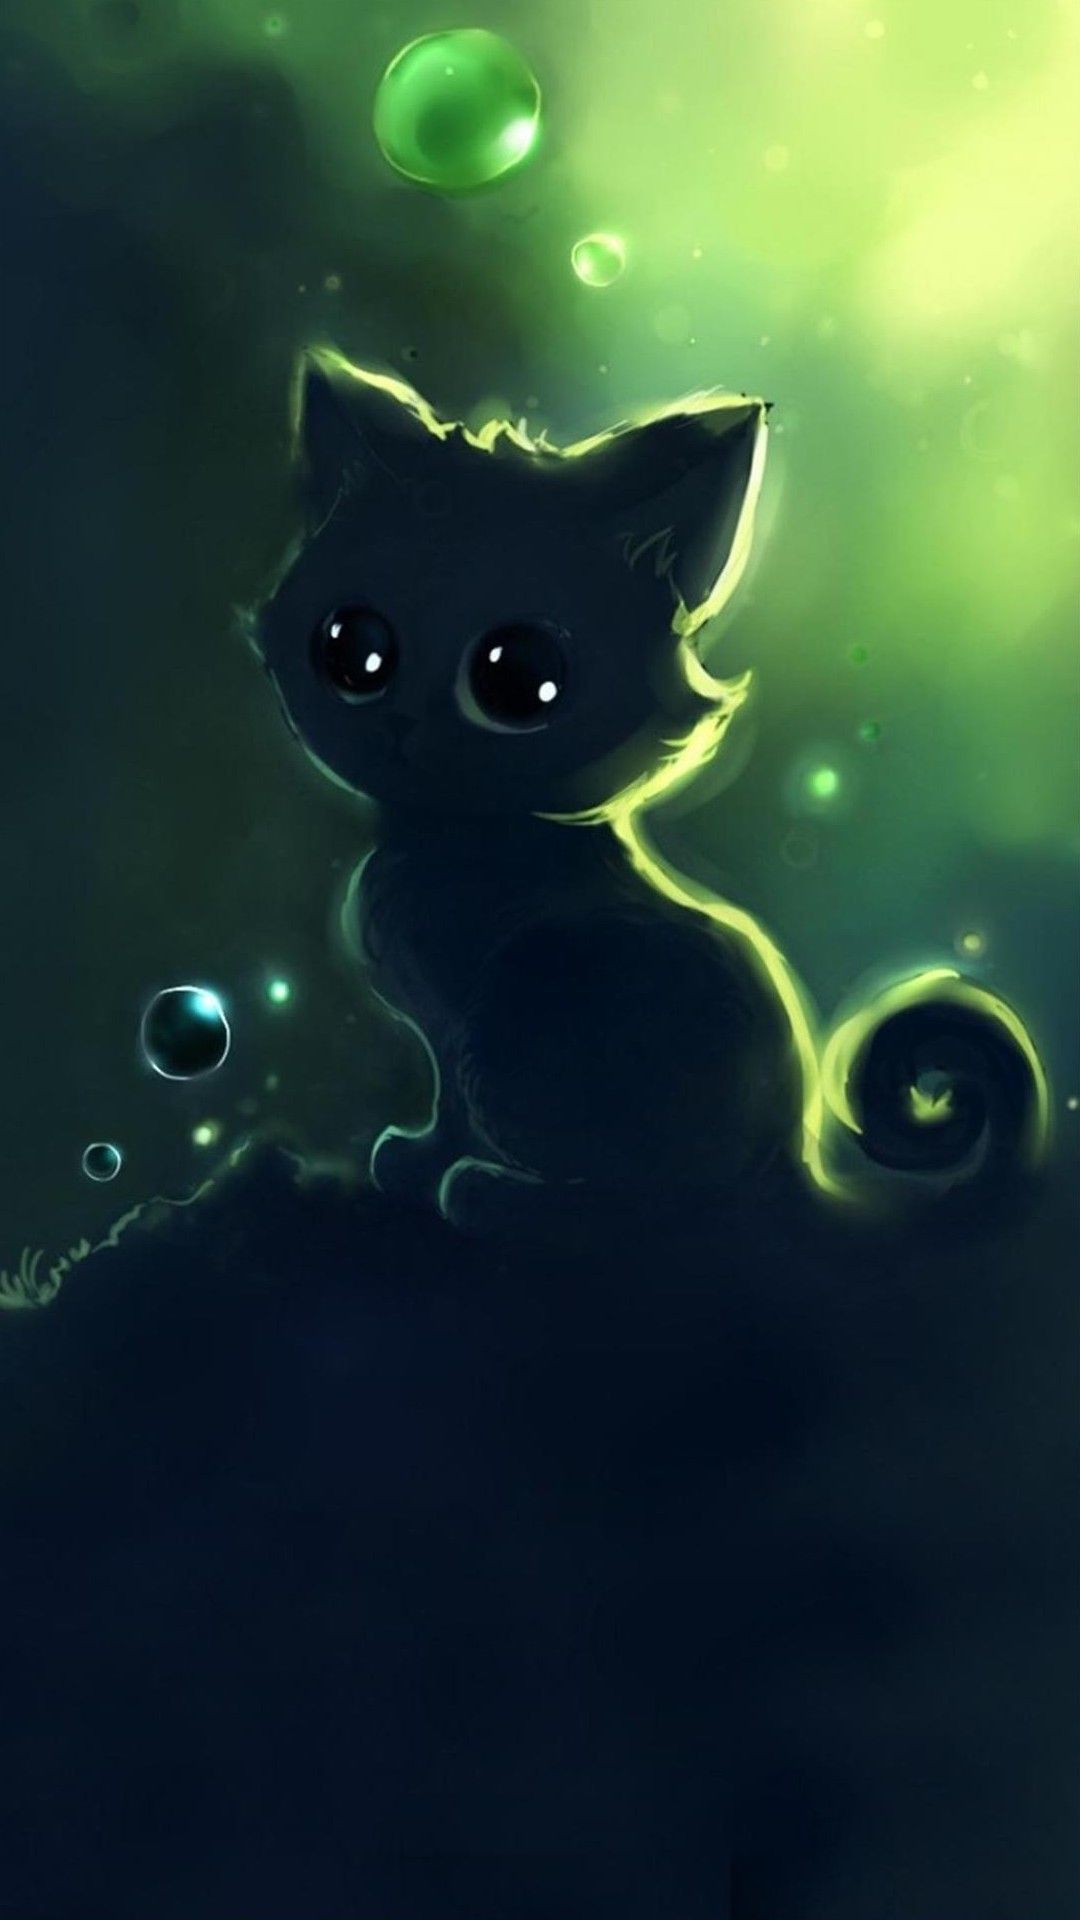 [35] Kawaii Anime Cat HD Wallpapers Desktop Background 1080x1920